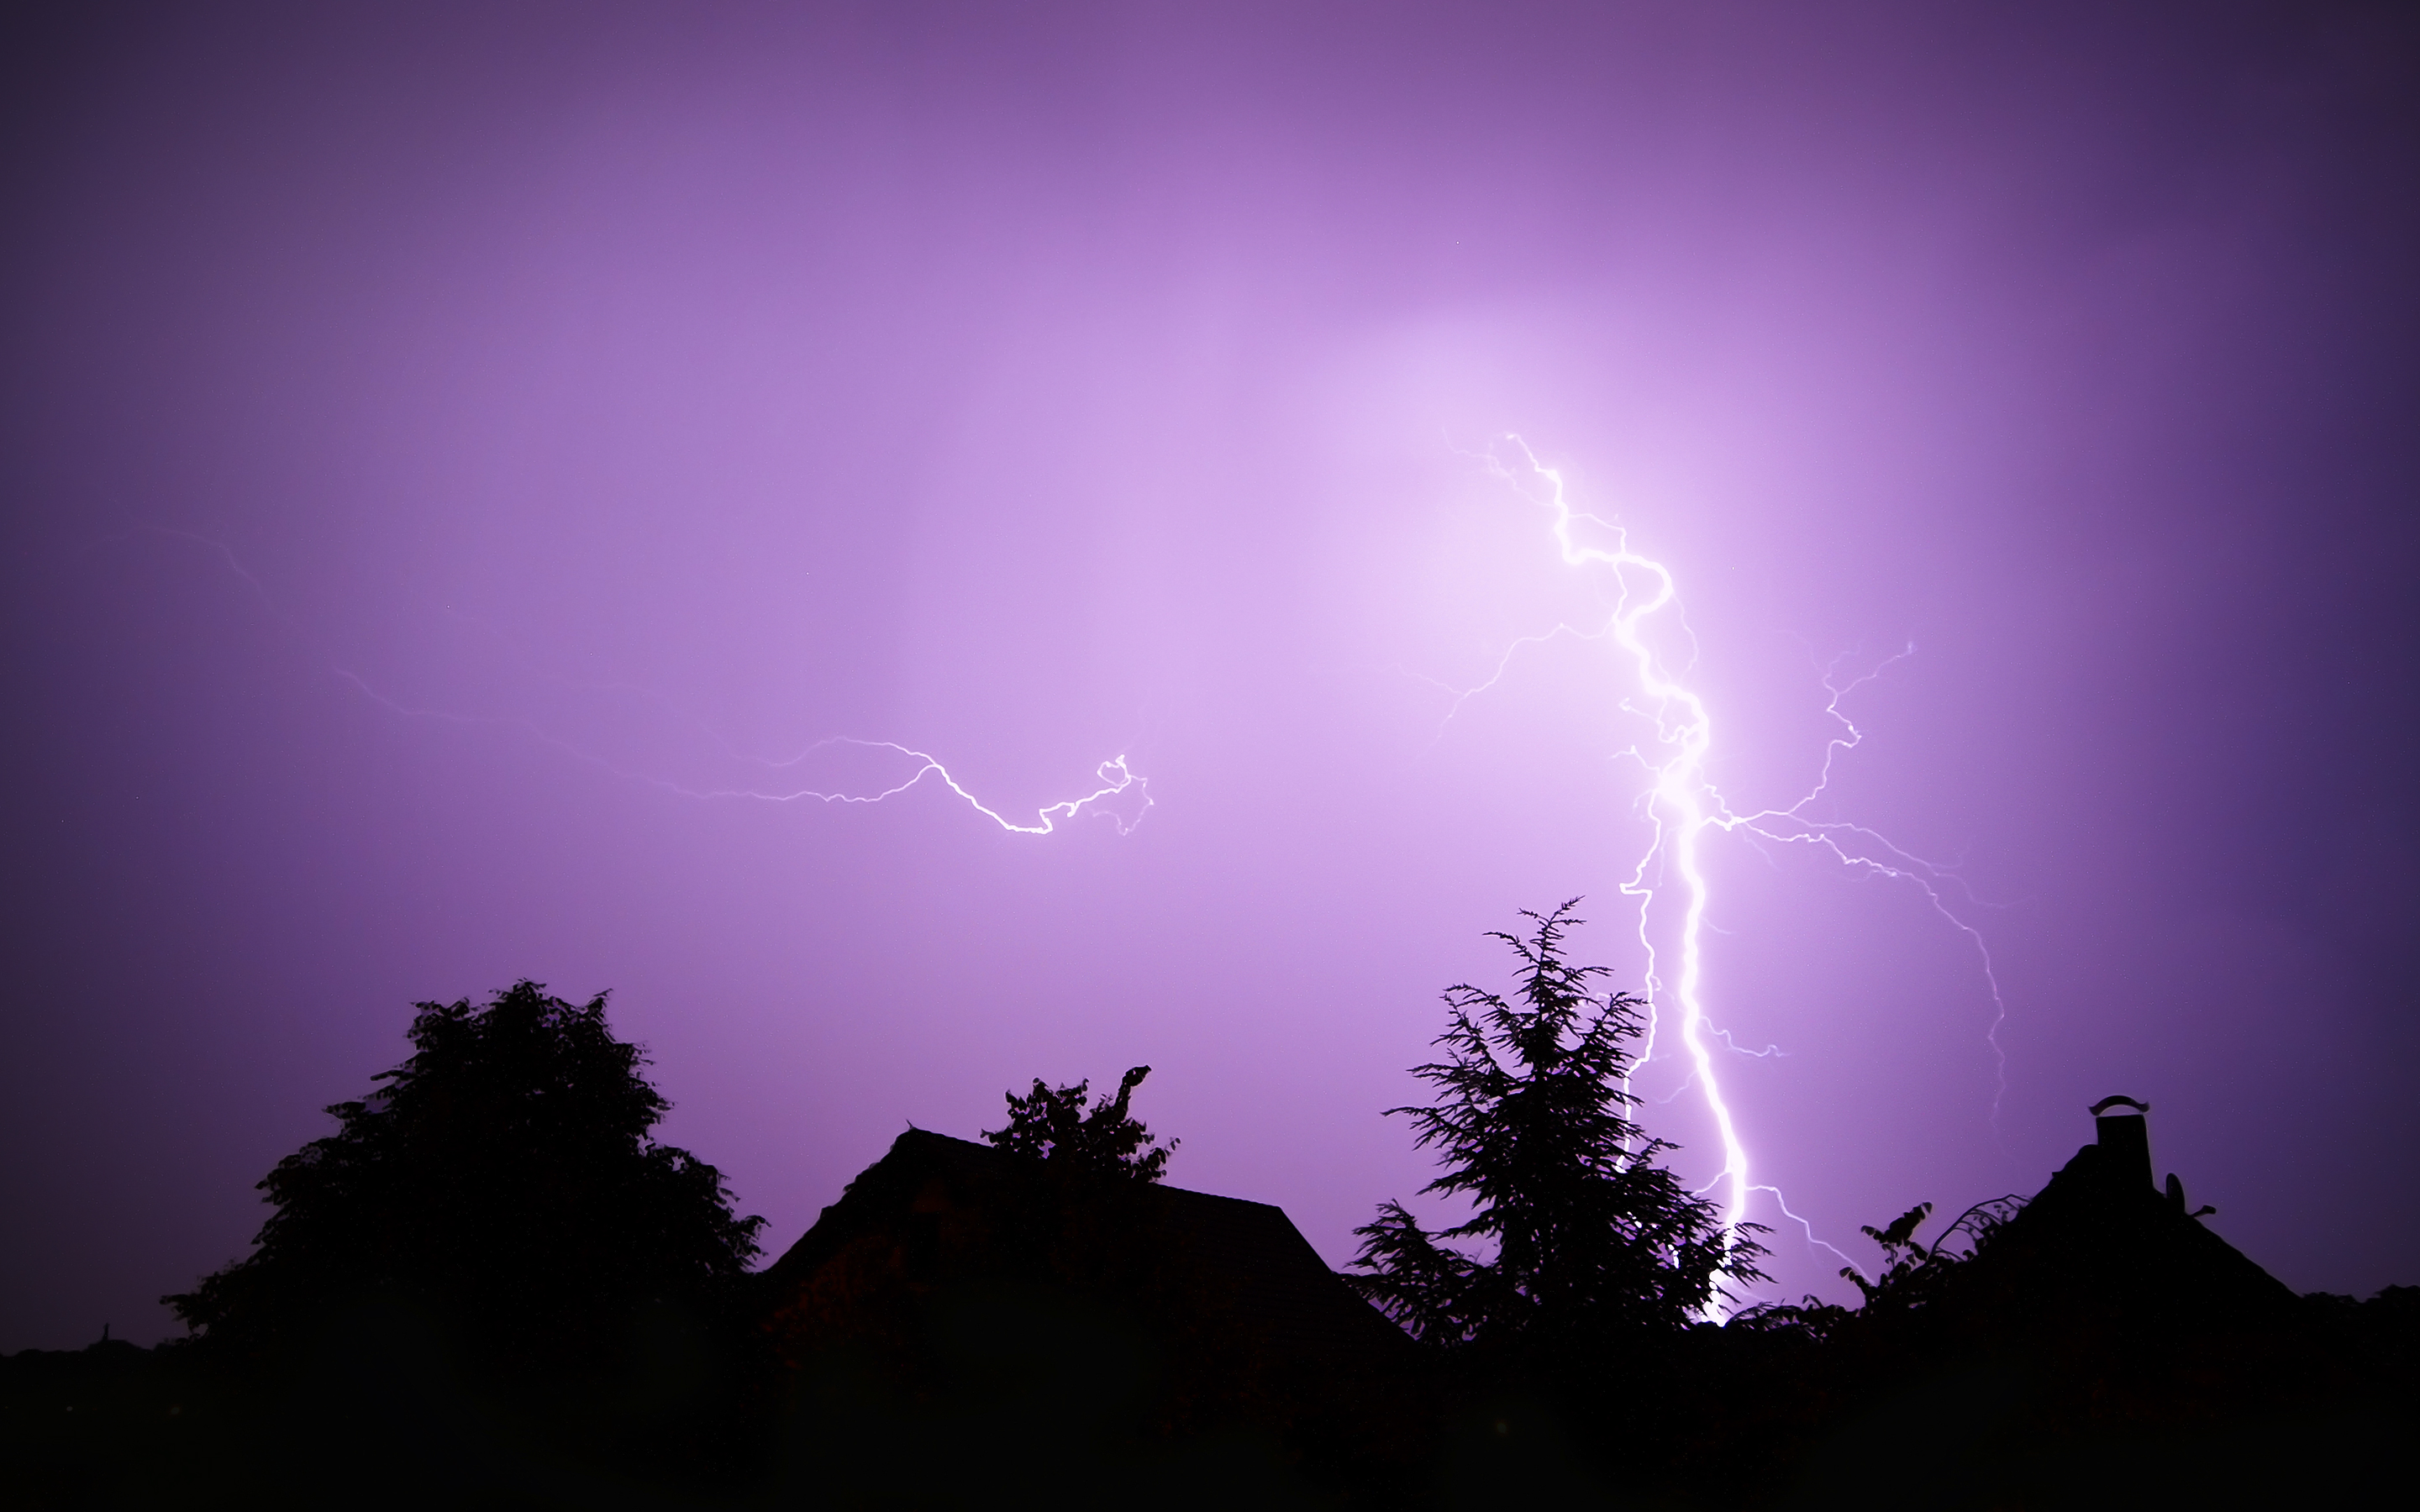 Lightning Storm Wallpapers HD Wallpapers 2880x1800